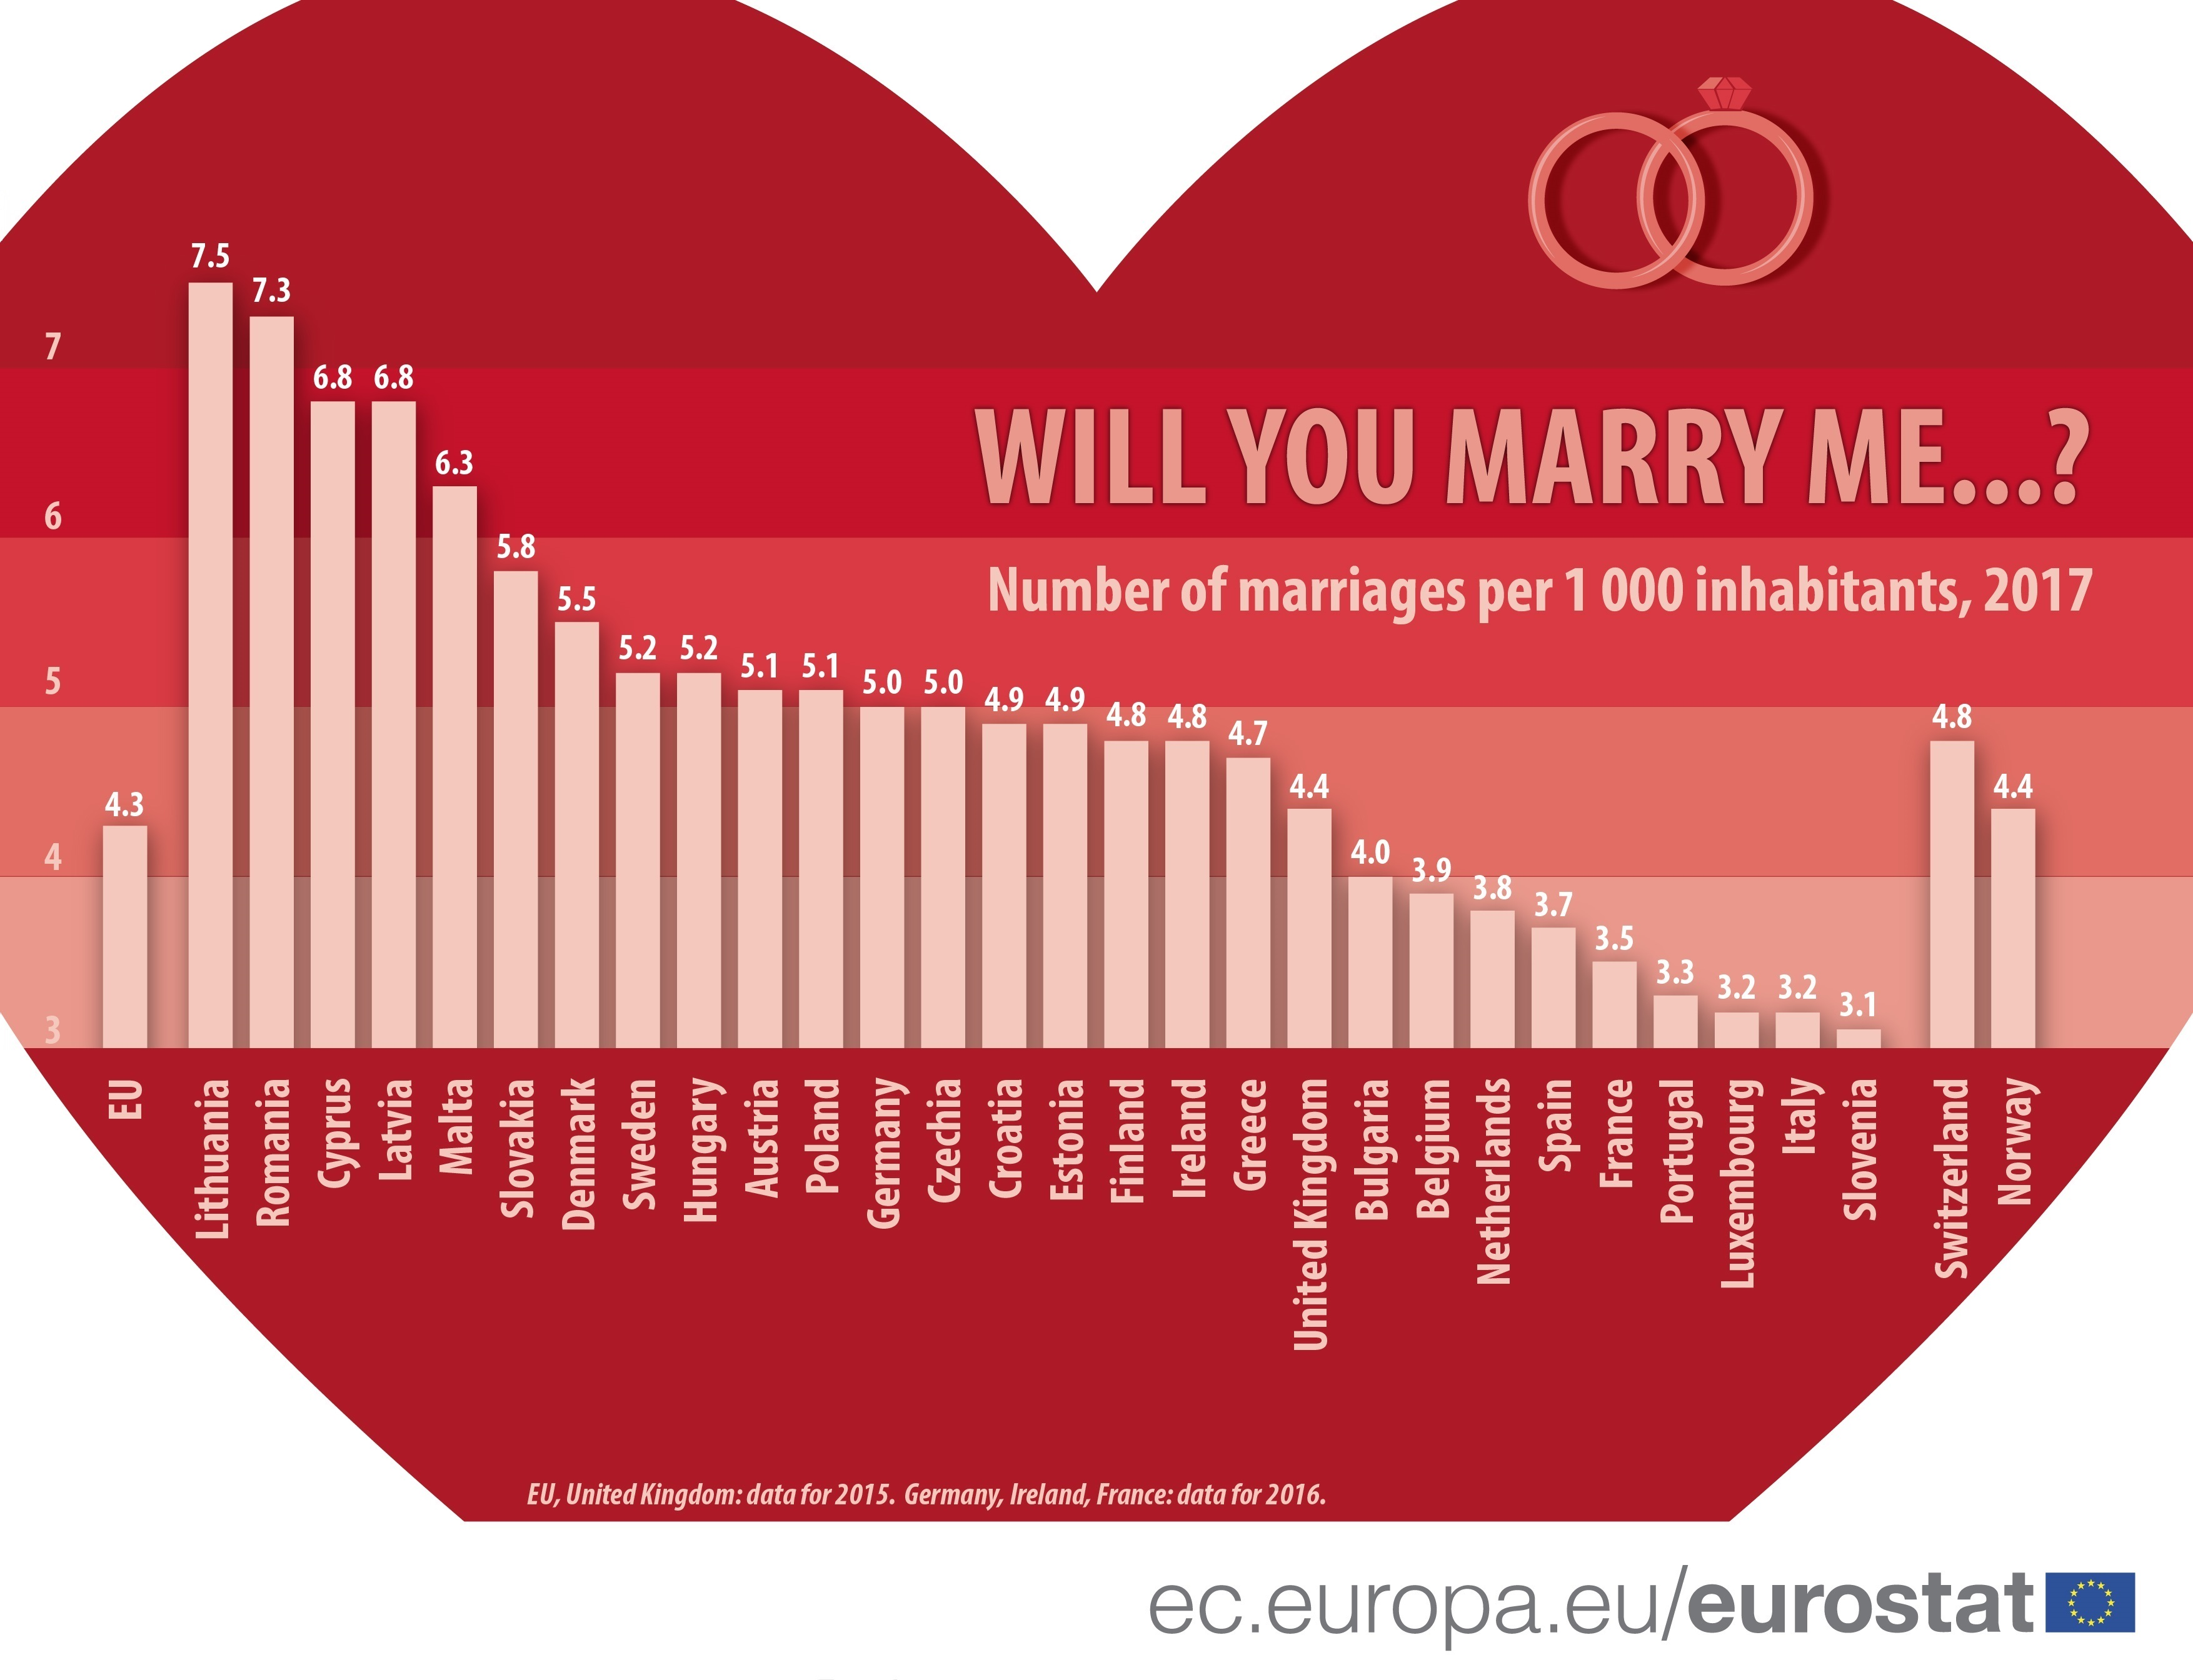 Infographic: Marriage rates by country, bar chart, 2017